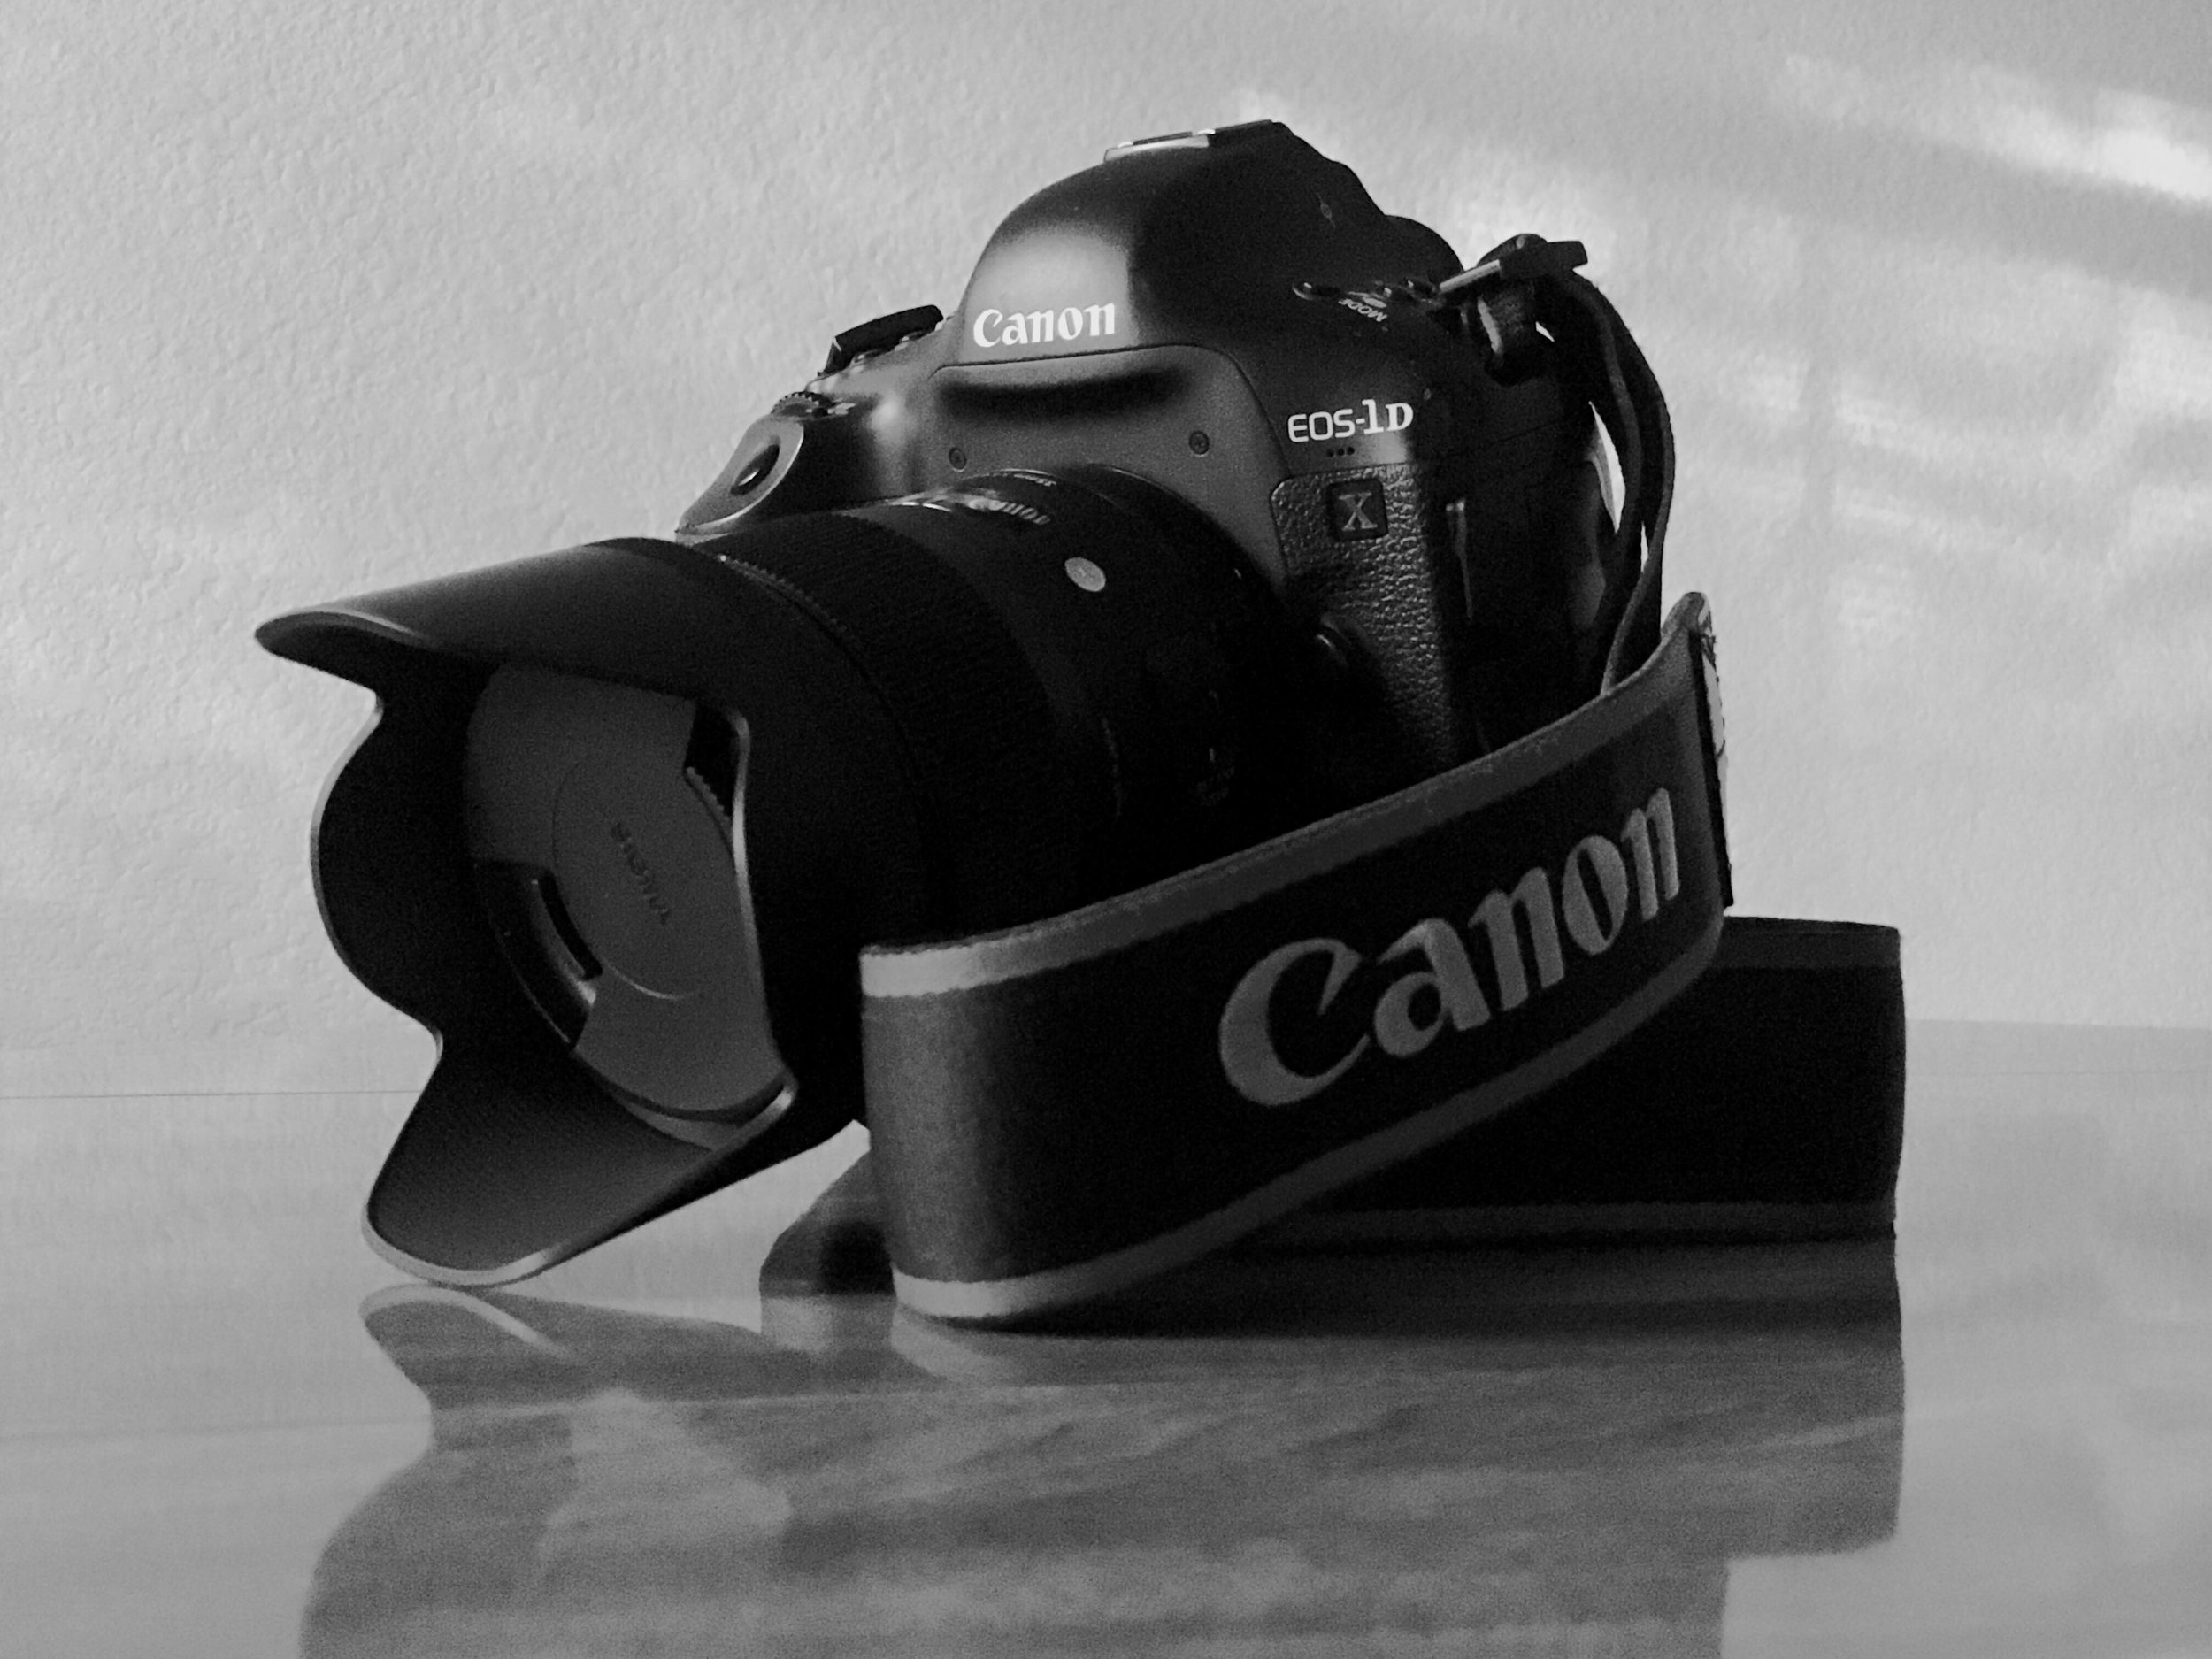 1 Year with the Canon 1Dx - A comprehensive review of a demanding first year with the legendary Canon 1Dx